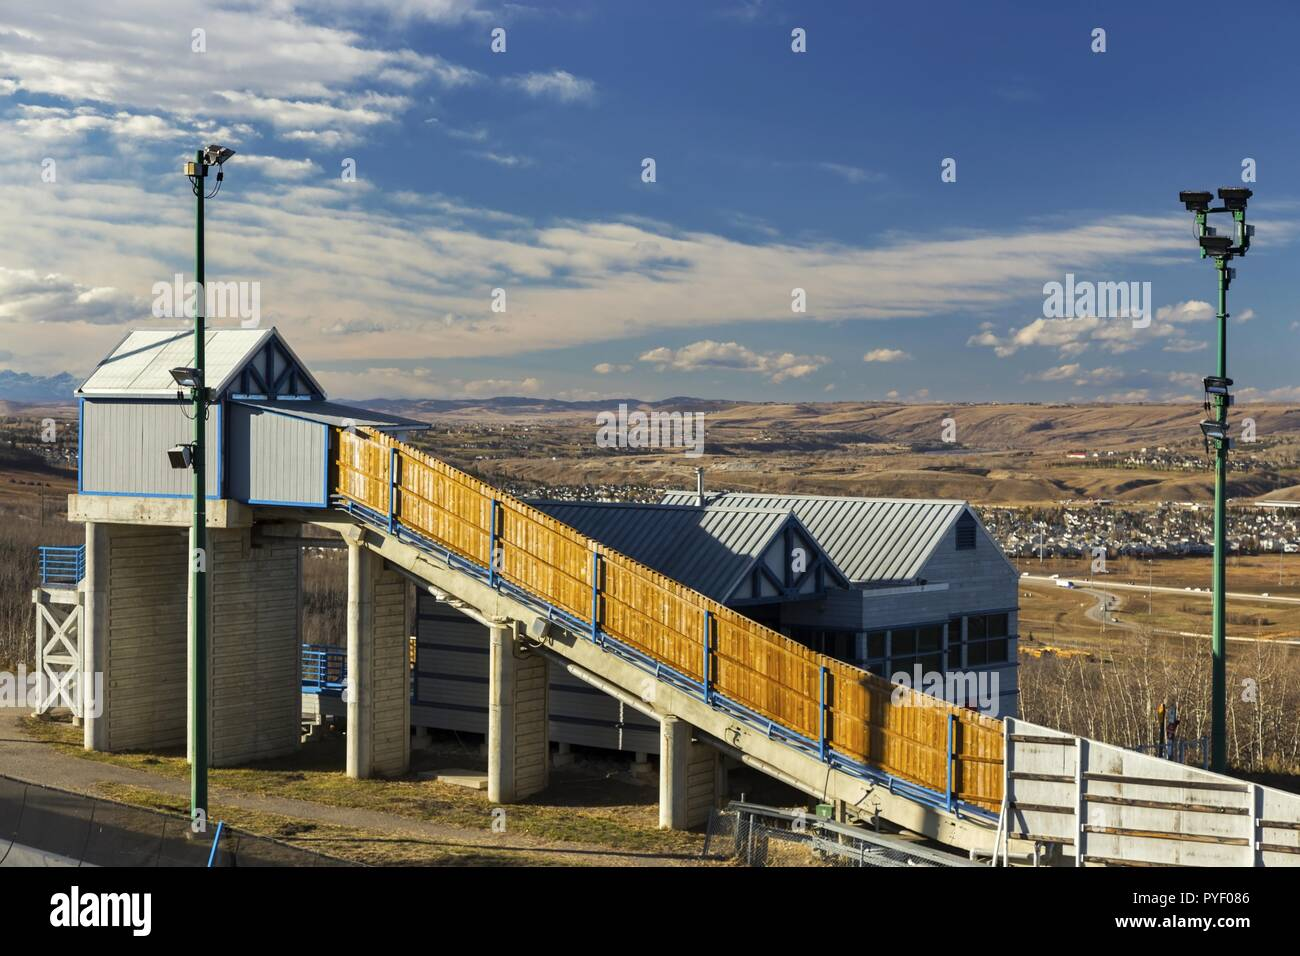 Bob Sleigh Winter Sport Facility in Canada Olympic Park (COP) in City of Calgary Alberta - Stock Image